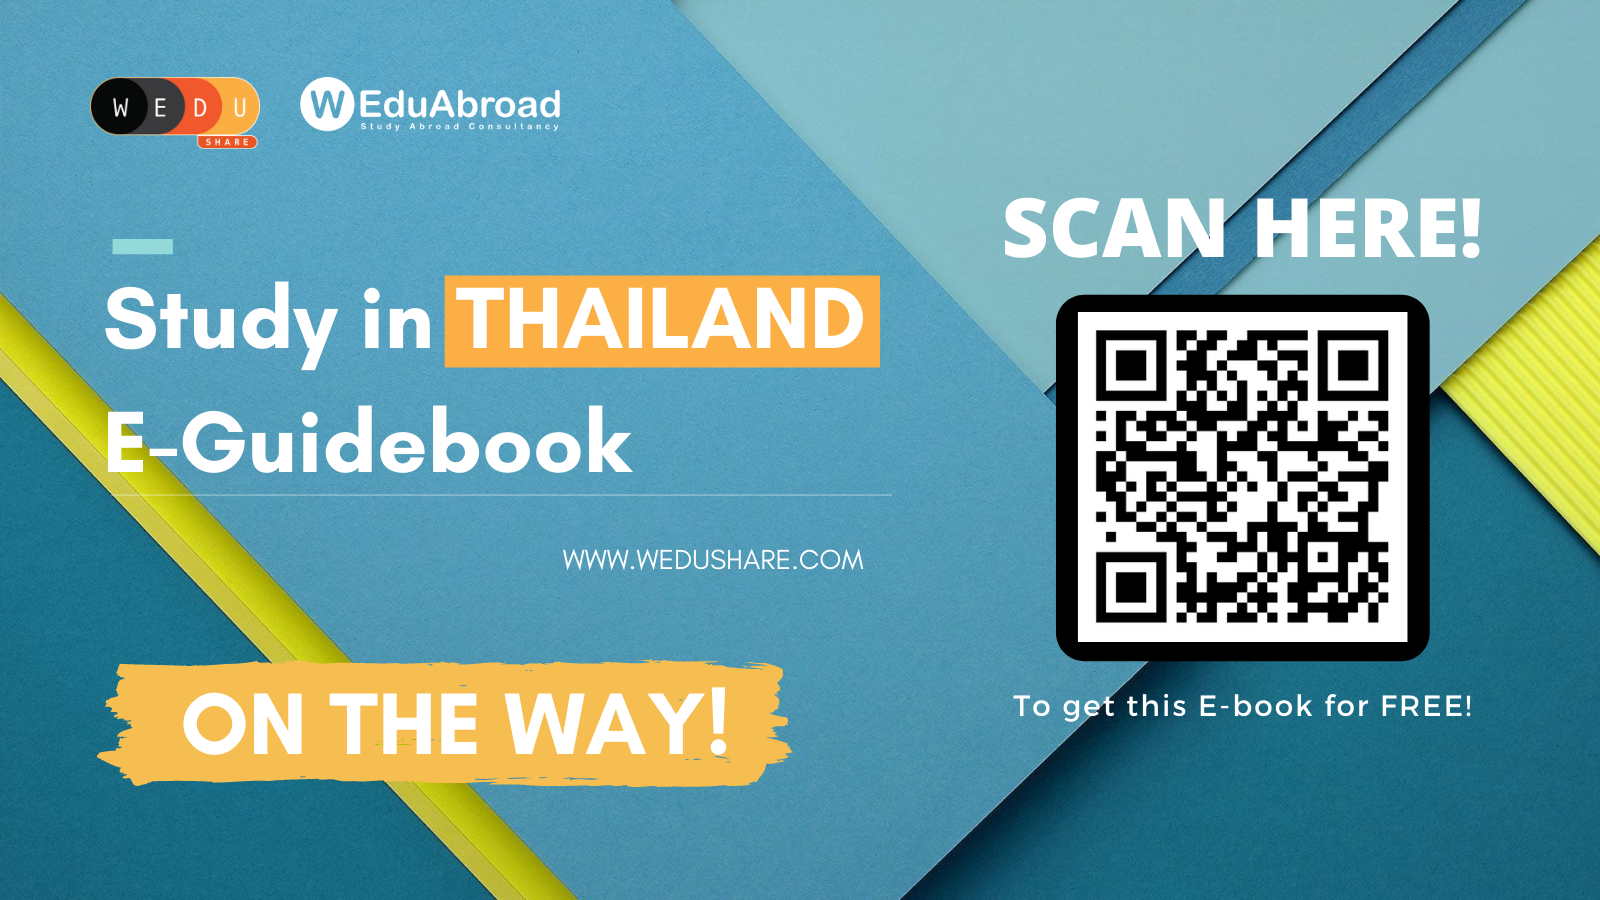 Exciting News for YOU! All-in-one Study in Thailand E-Guidebook is on the way!